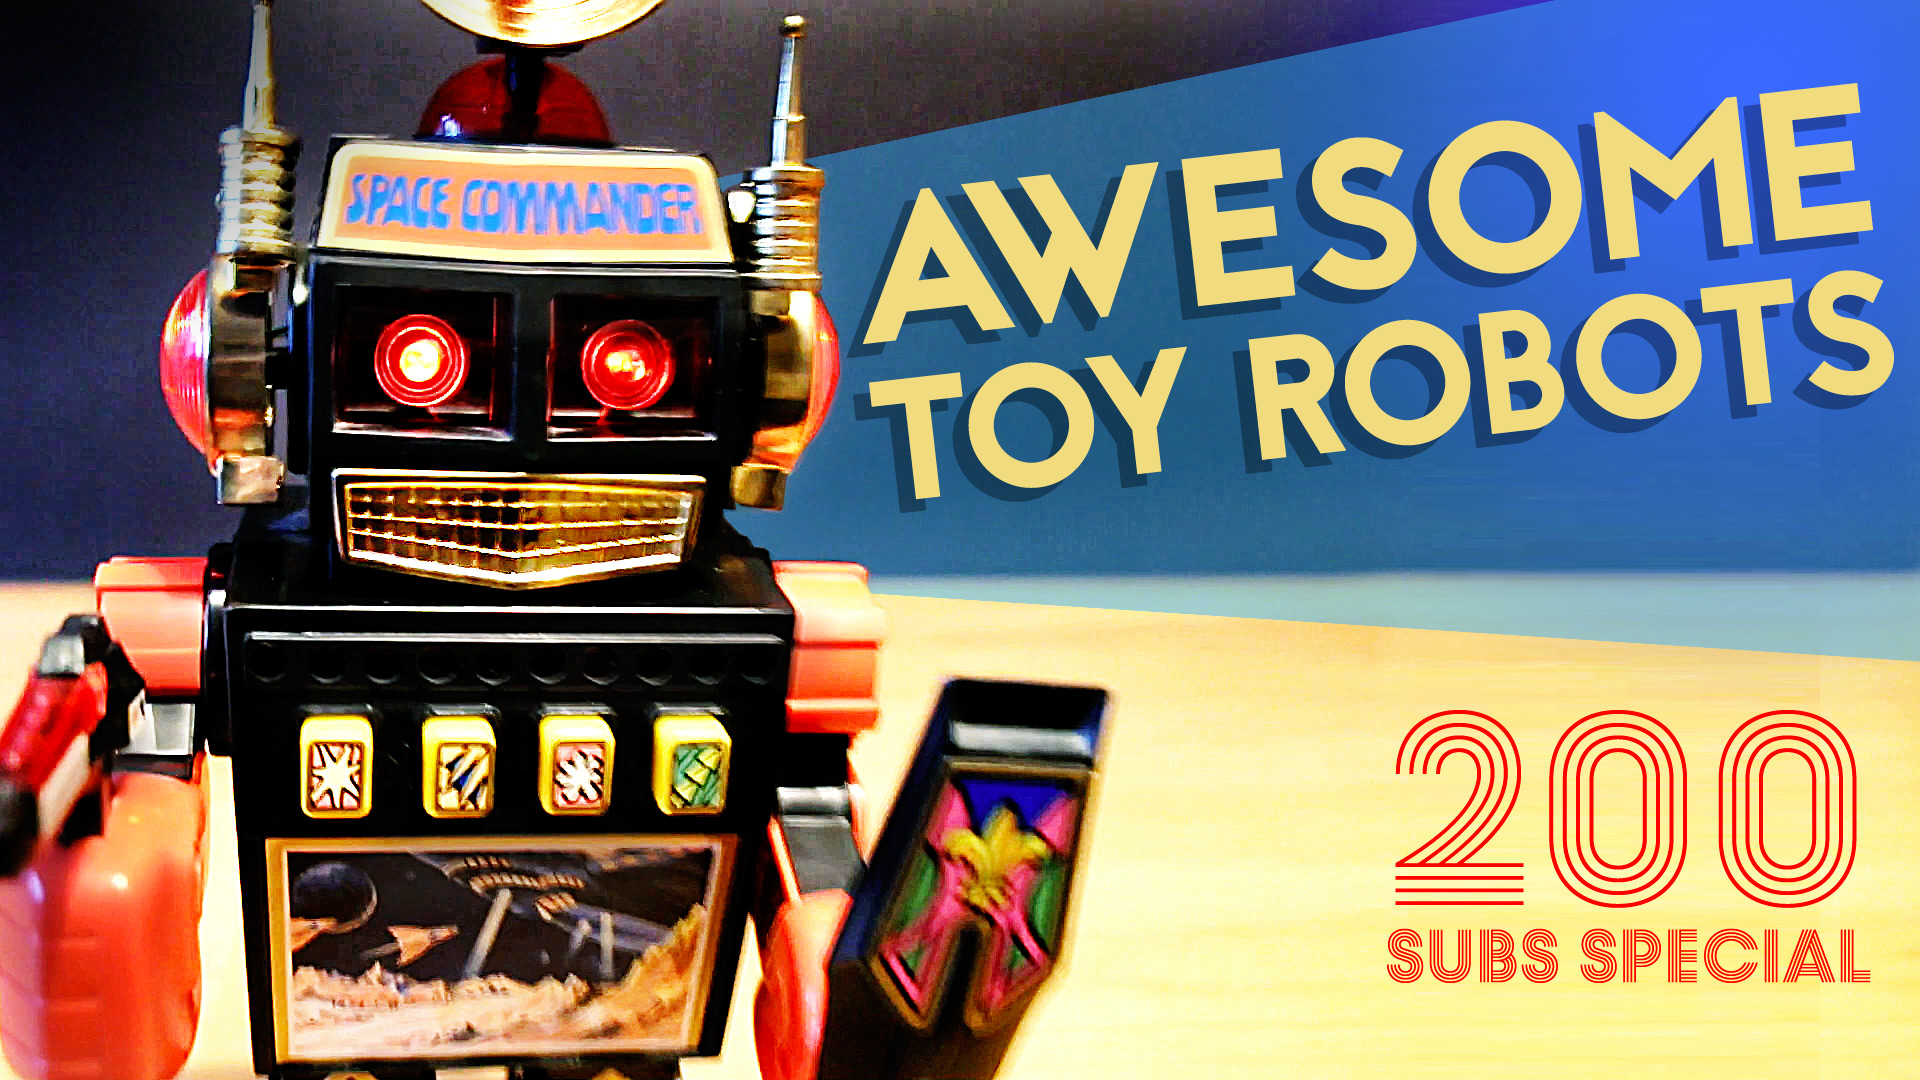 Awesome Toy Robots - 200 Subs Robot Elixir Special